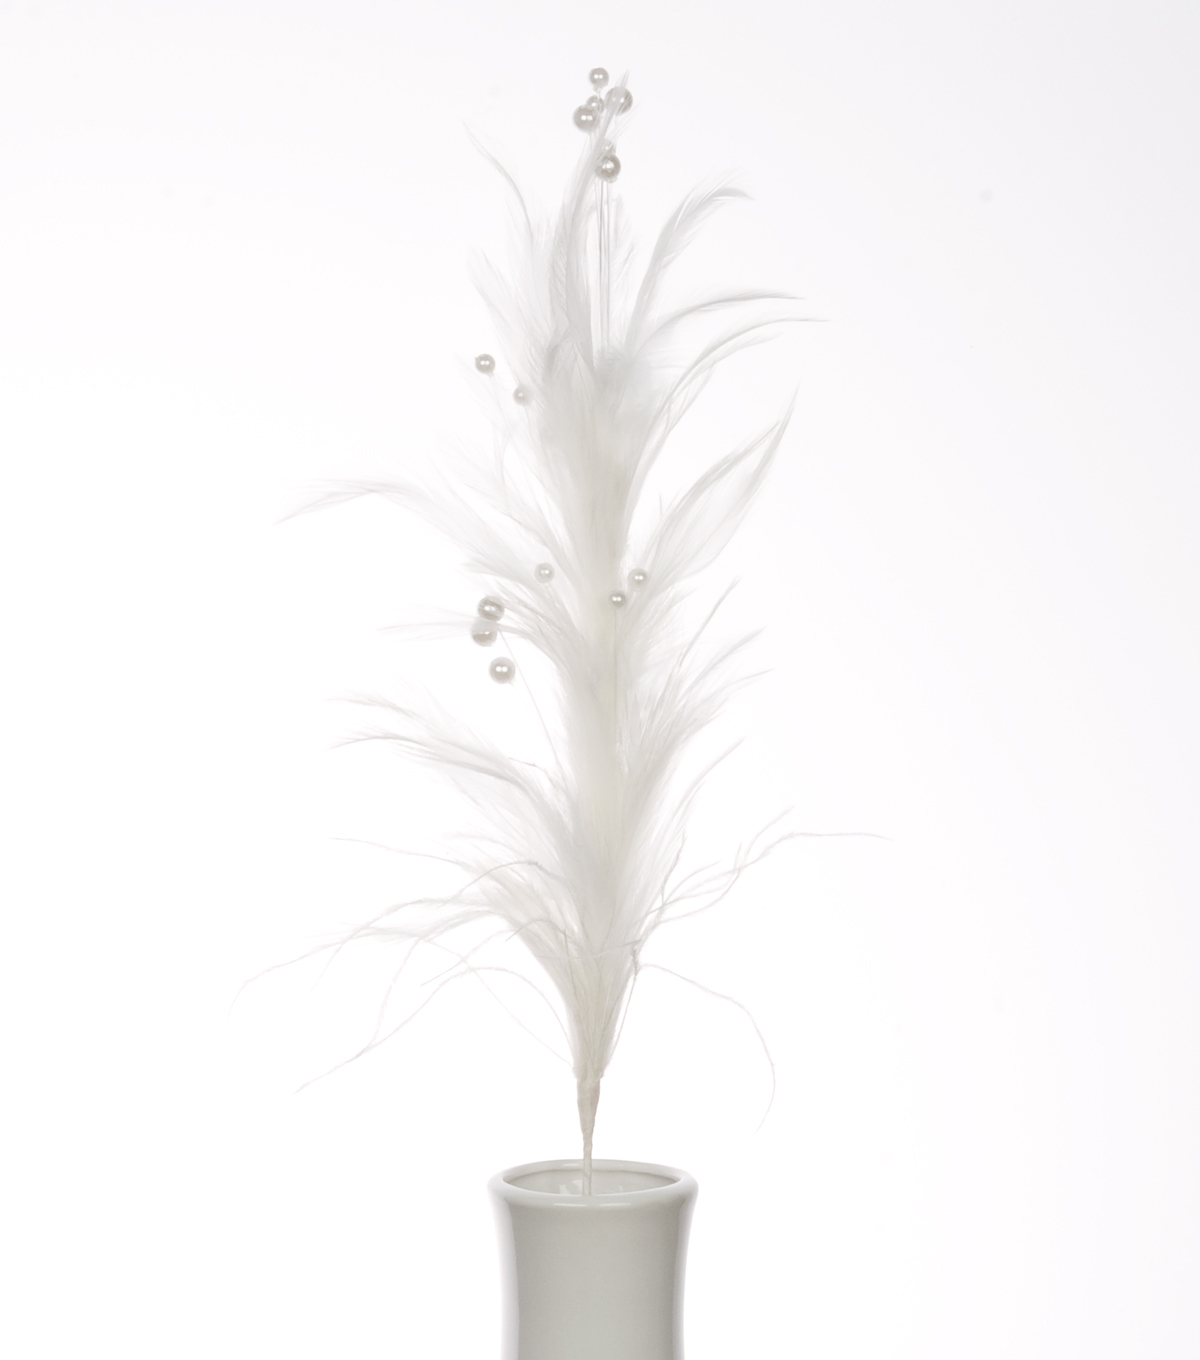 Bloom Room 21\u0022 Hackle Feather Floral Spray-White with Pearls